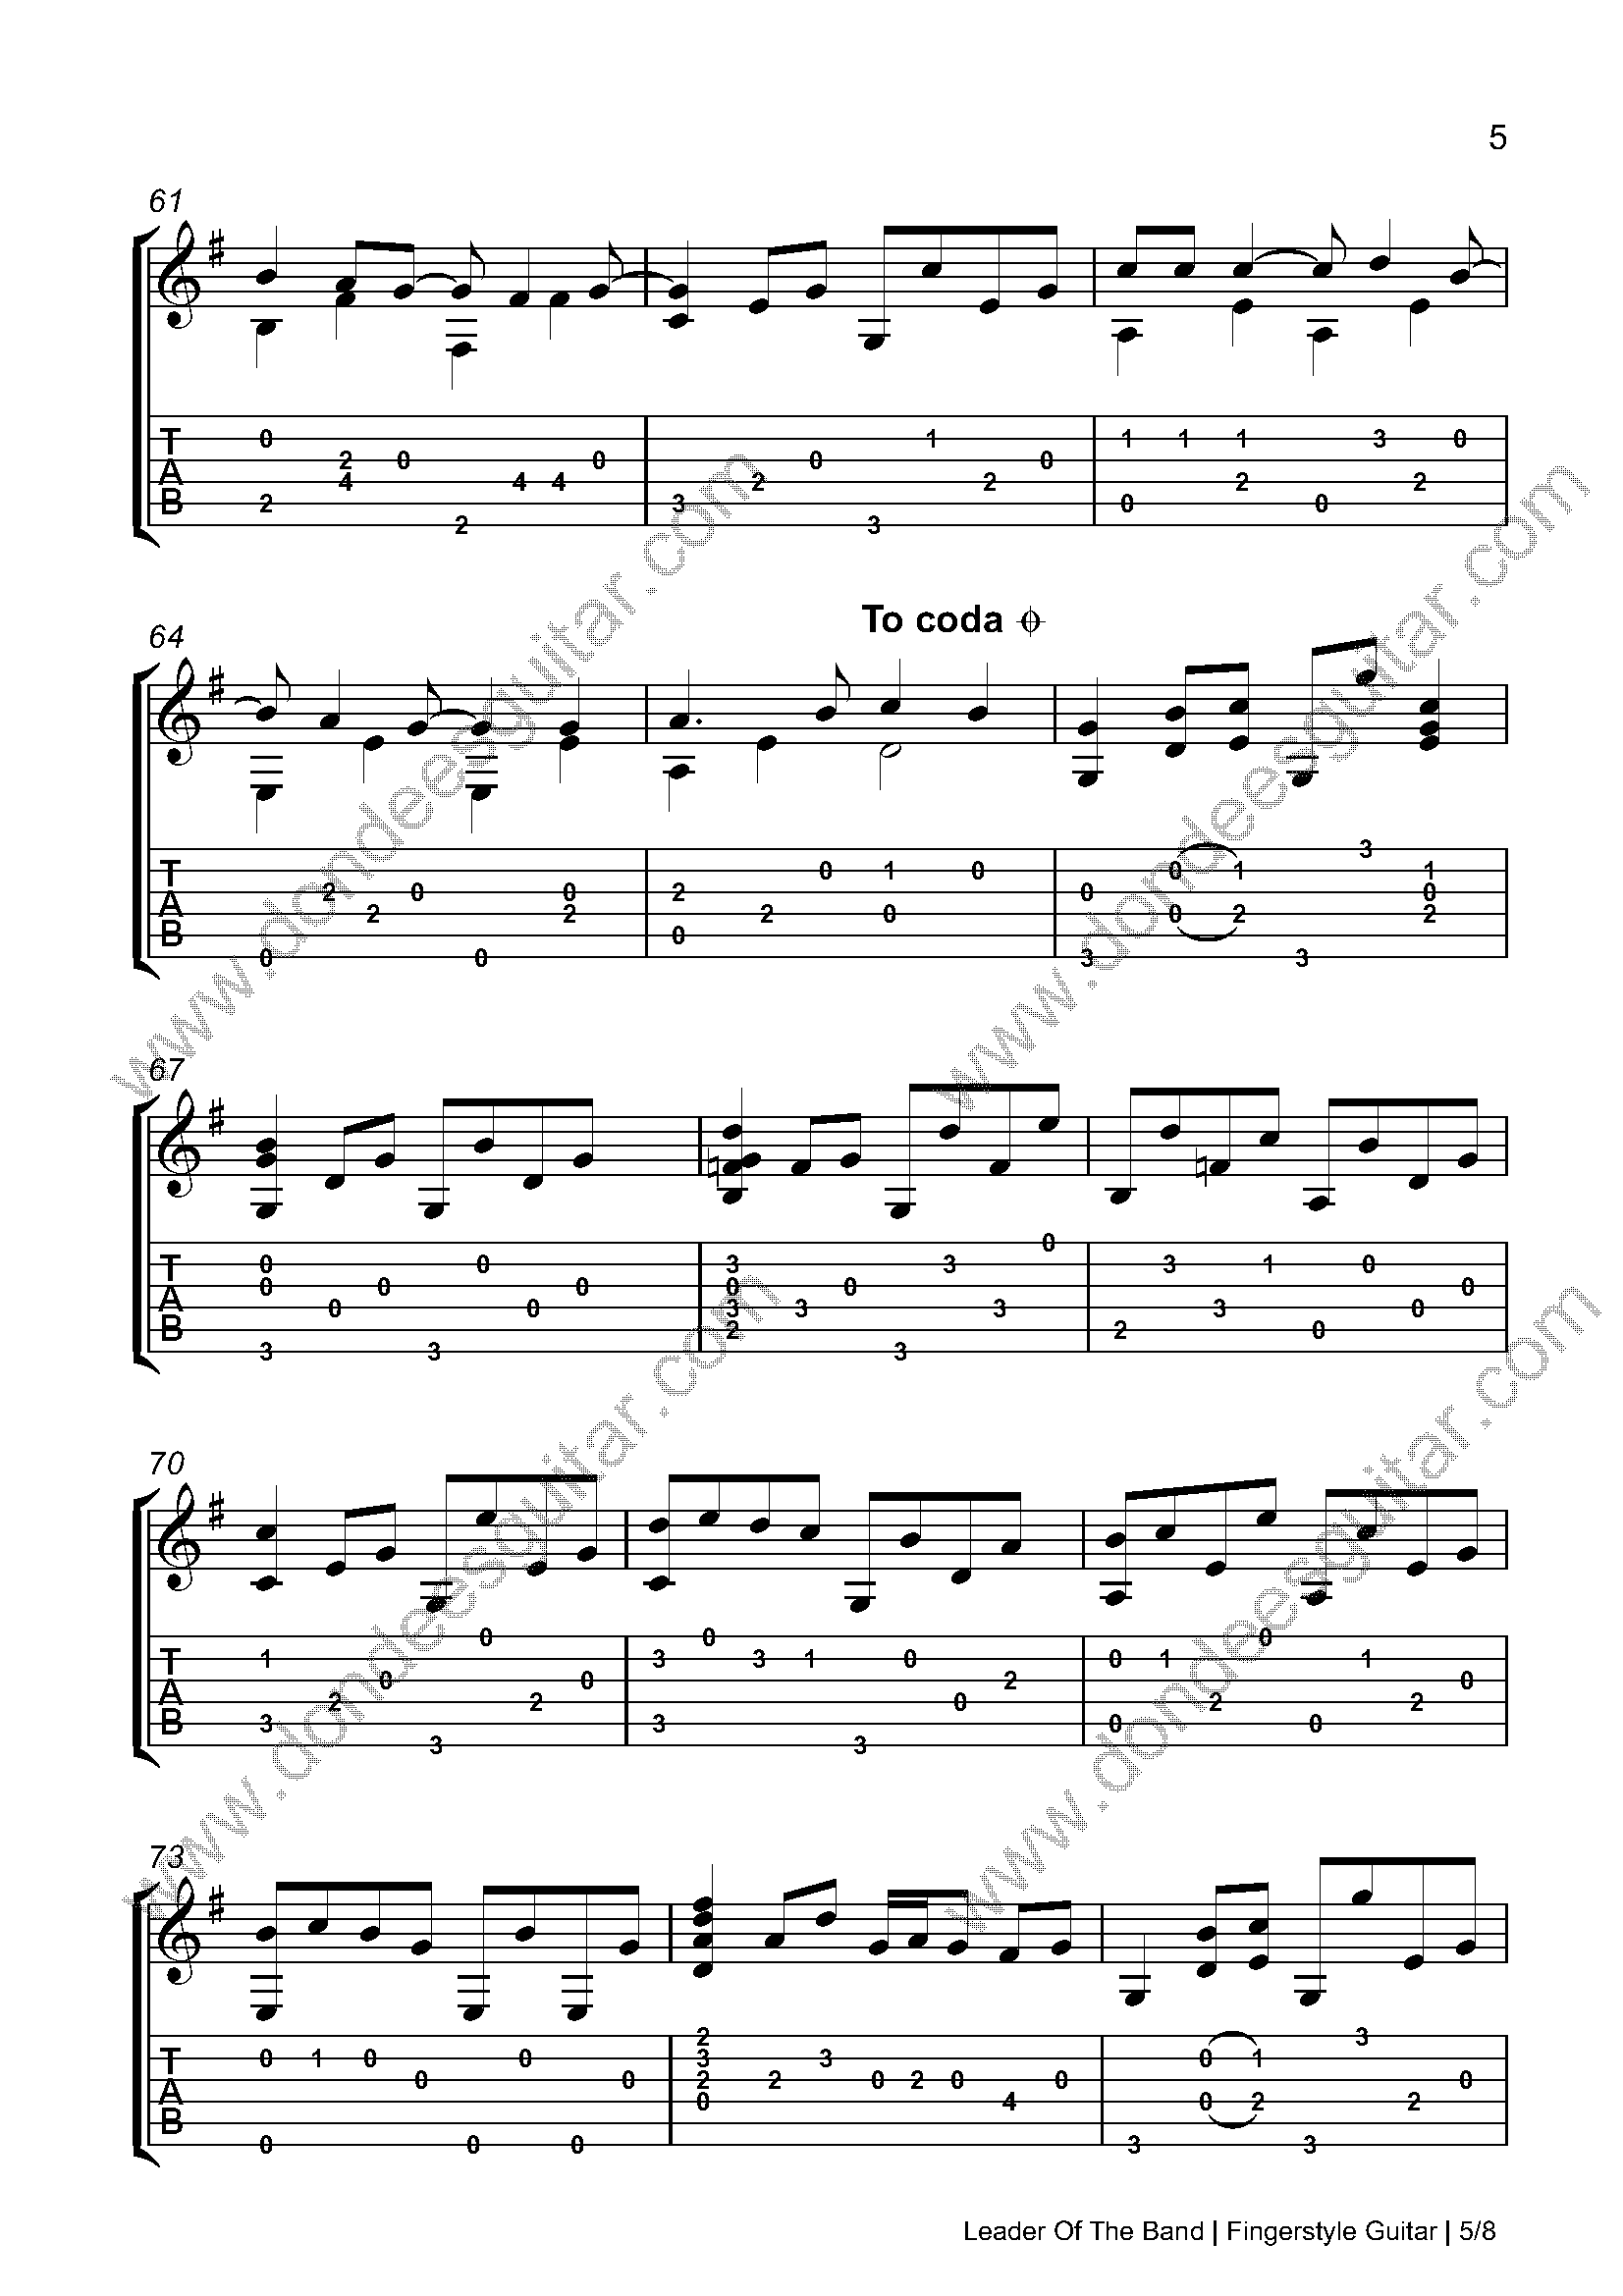 Leader Of The Band Fingerstyle Tabs